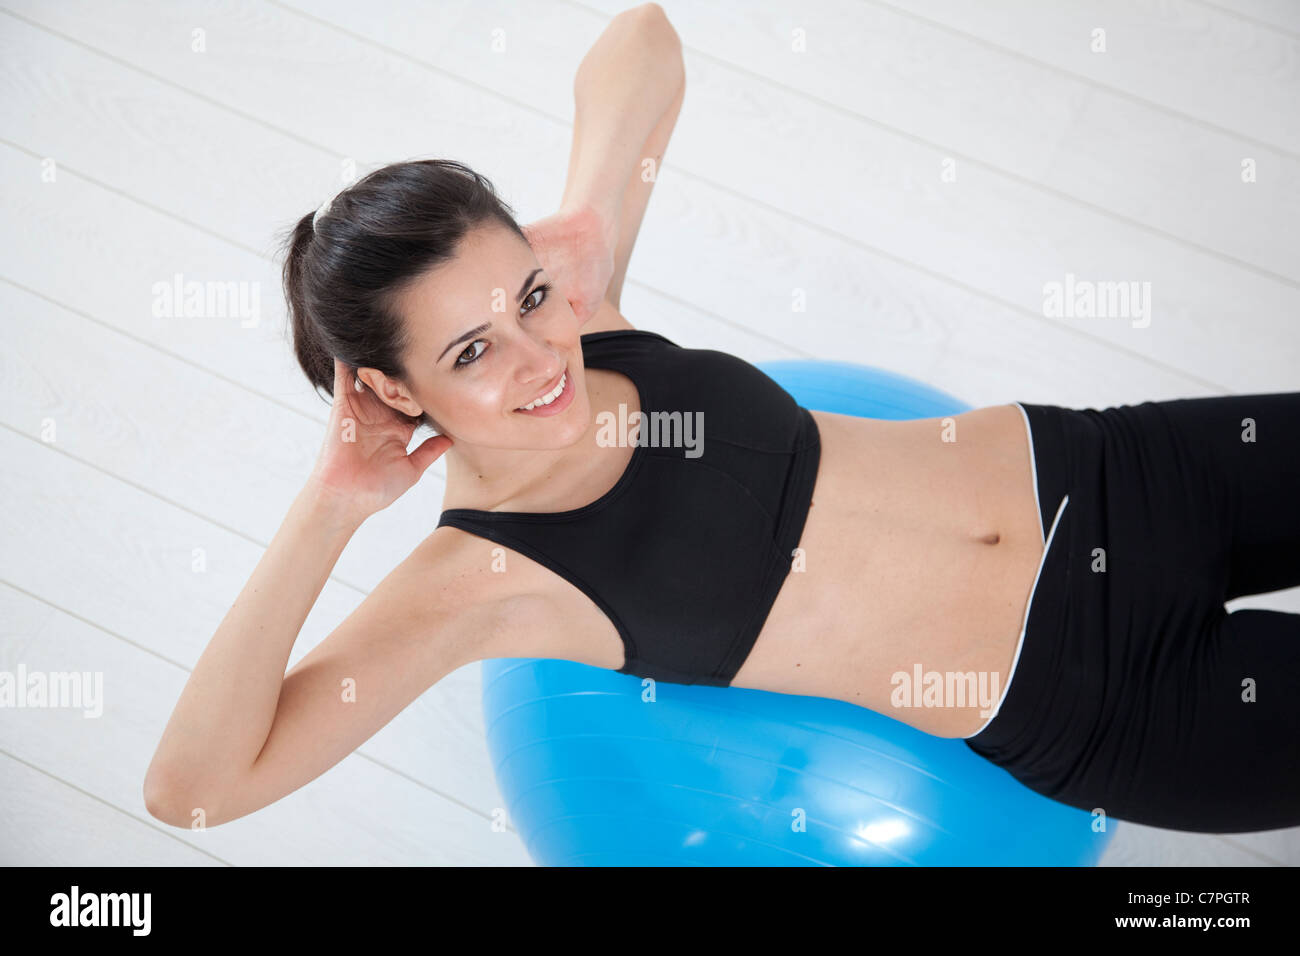 Woman doing sit-ups on exercise ball - Stock Image